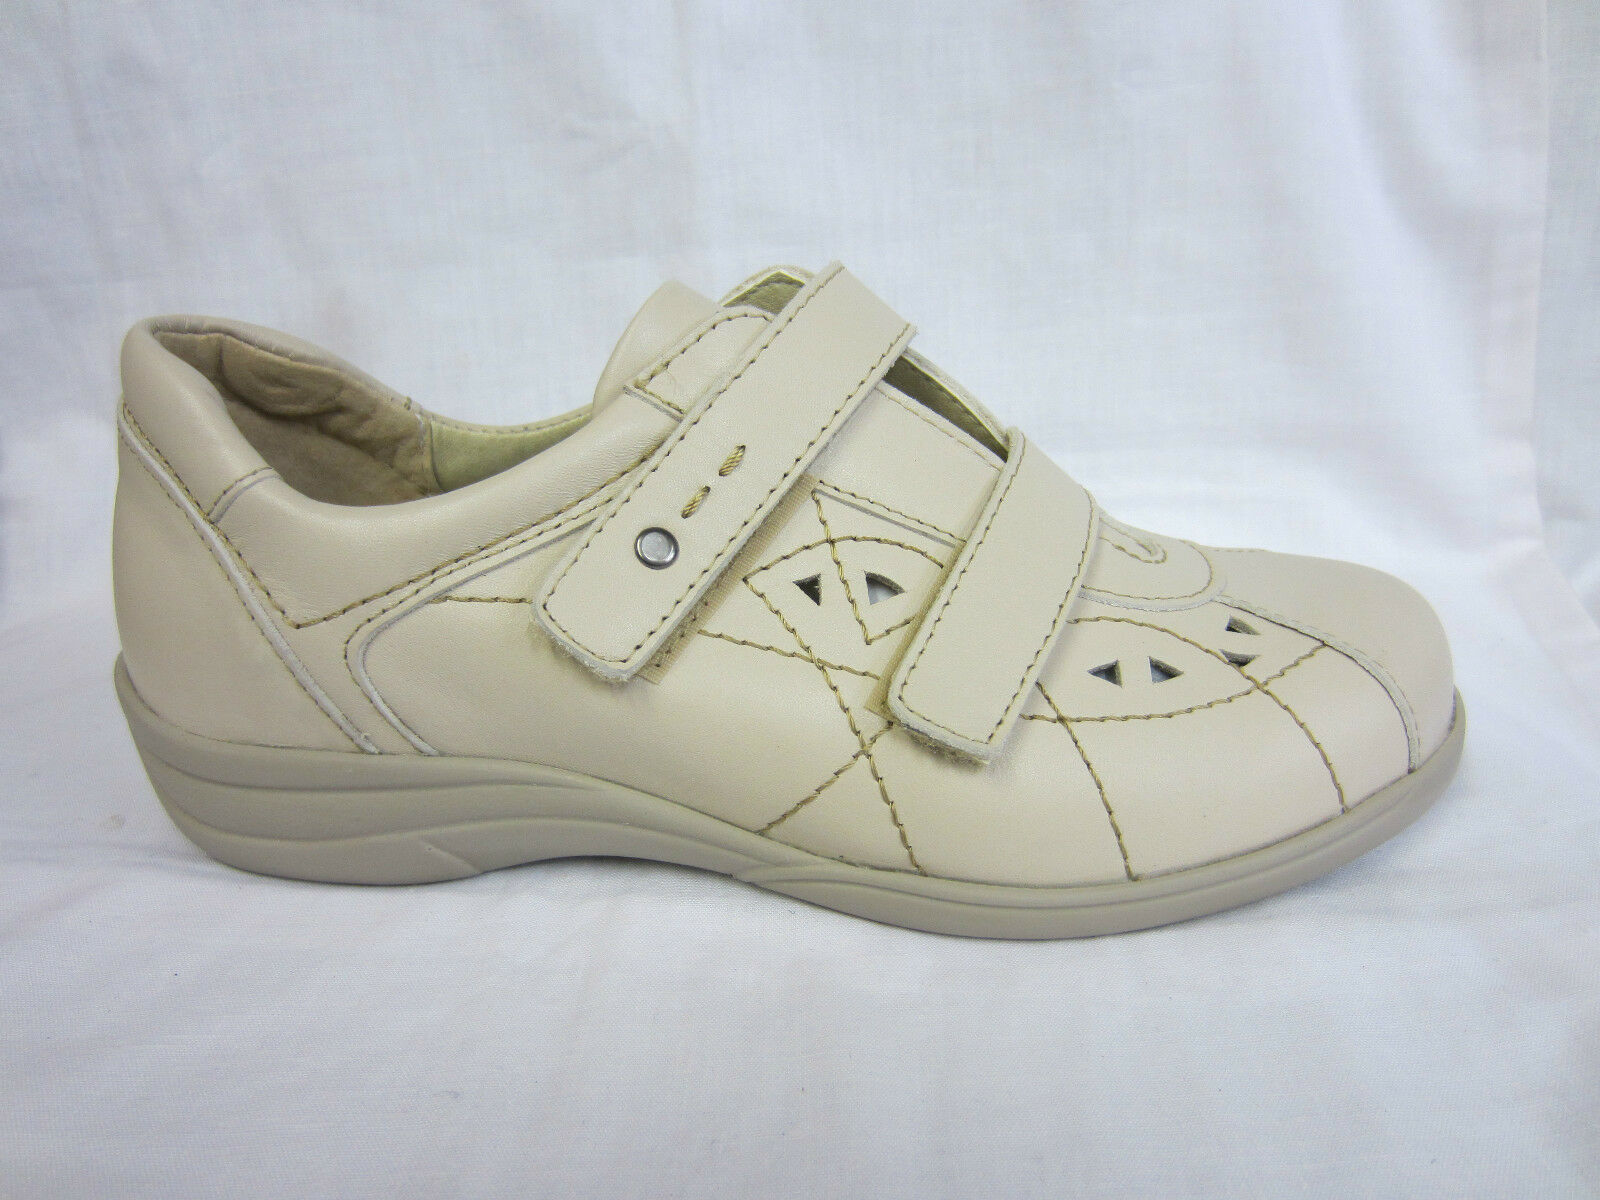 Easy B Cynthia Navy or Schuhe Beige Wide Fitting Leder Schuhe or 0618c9